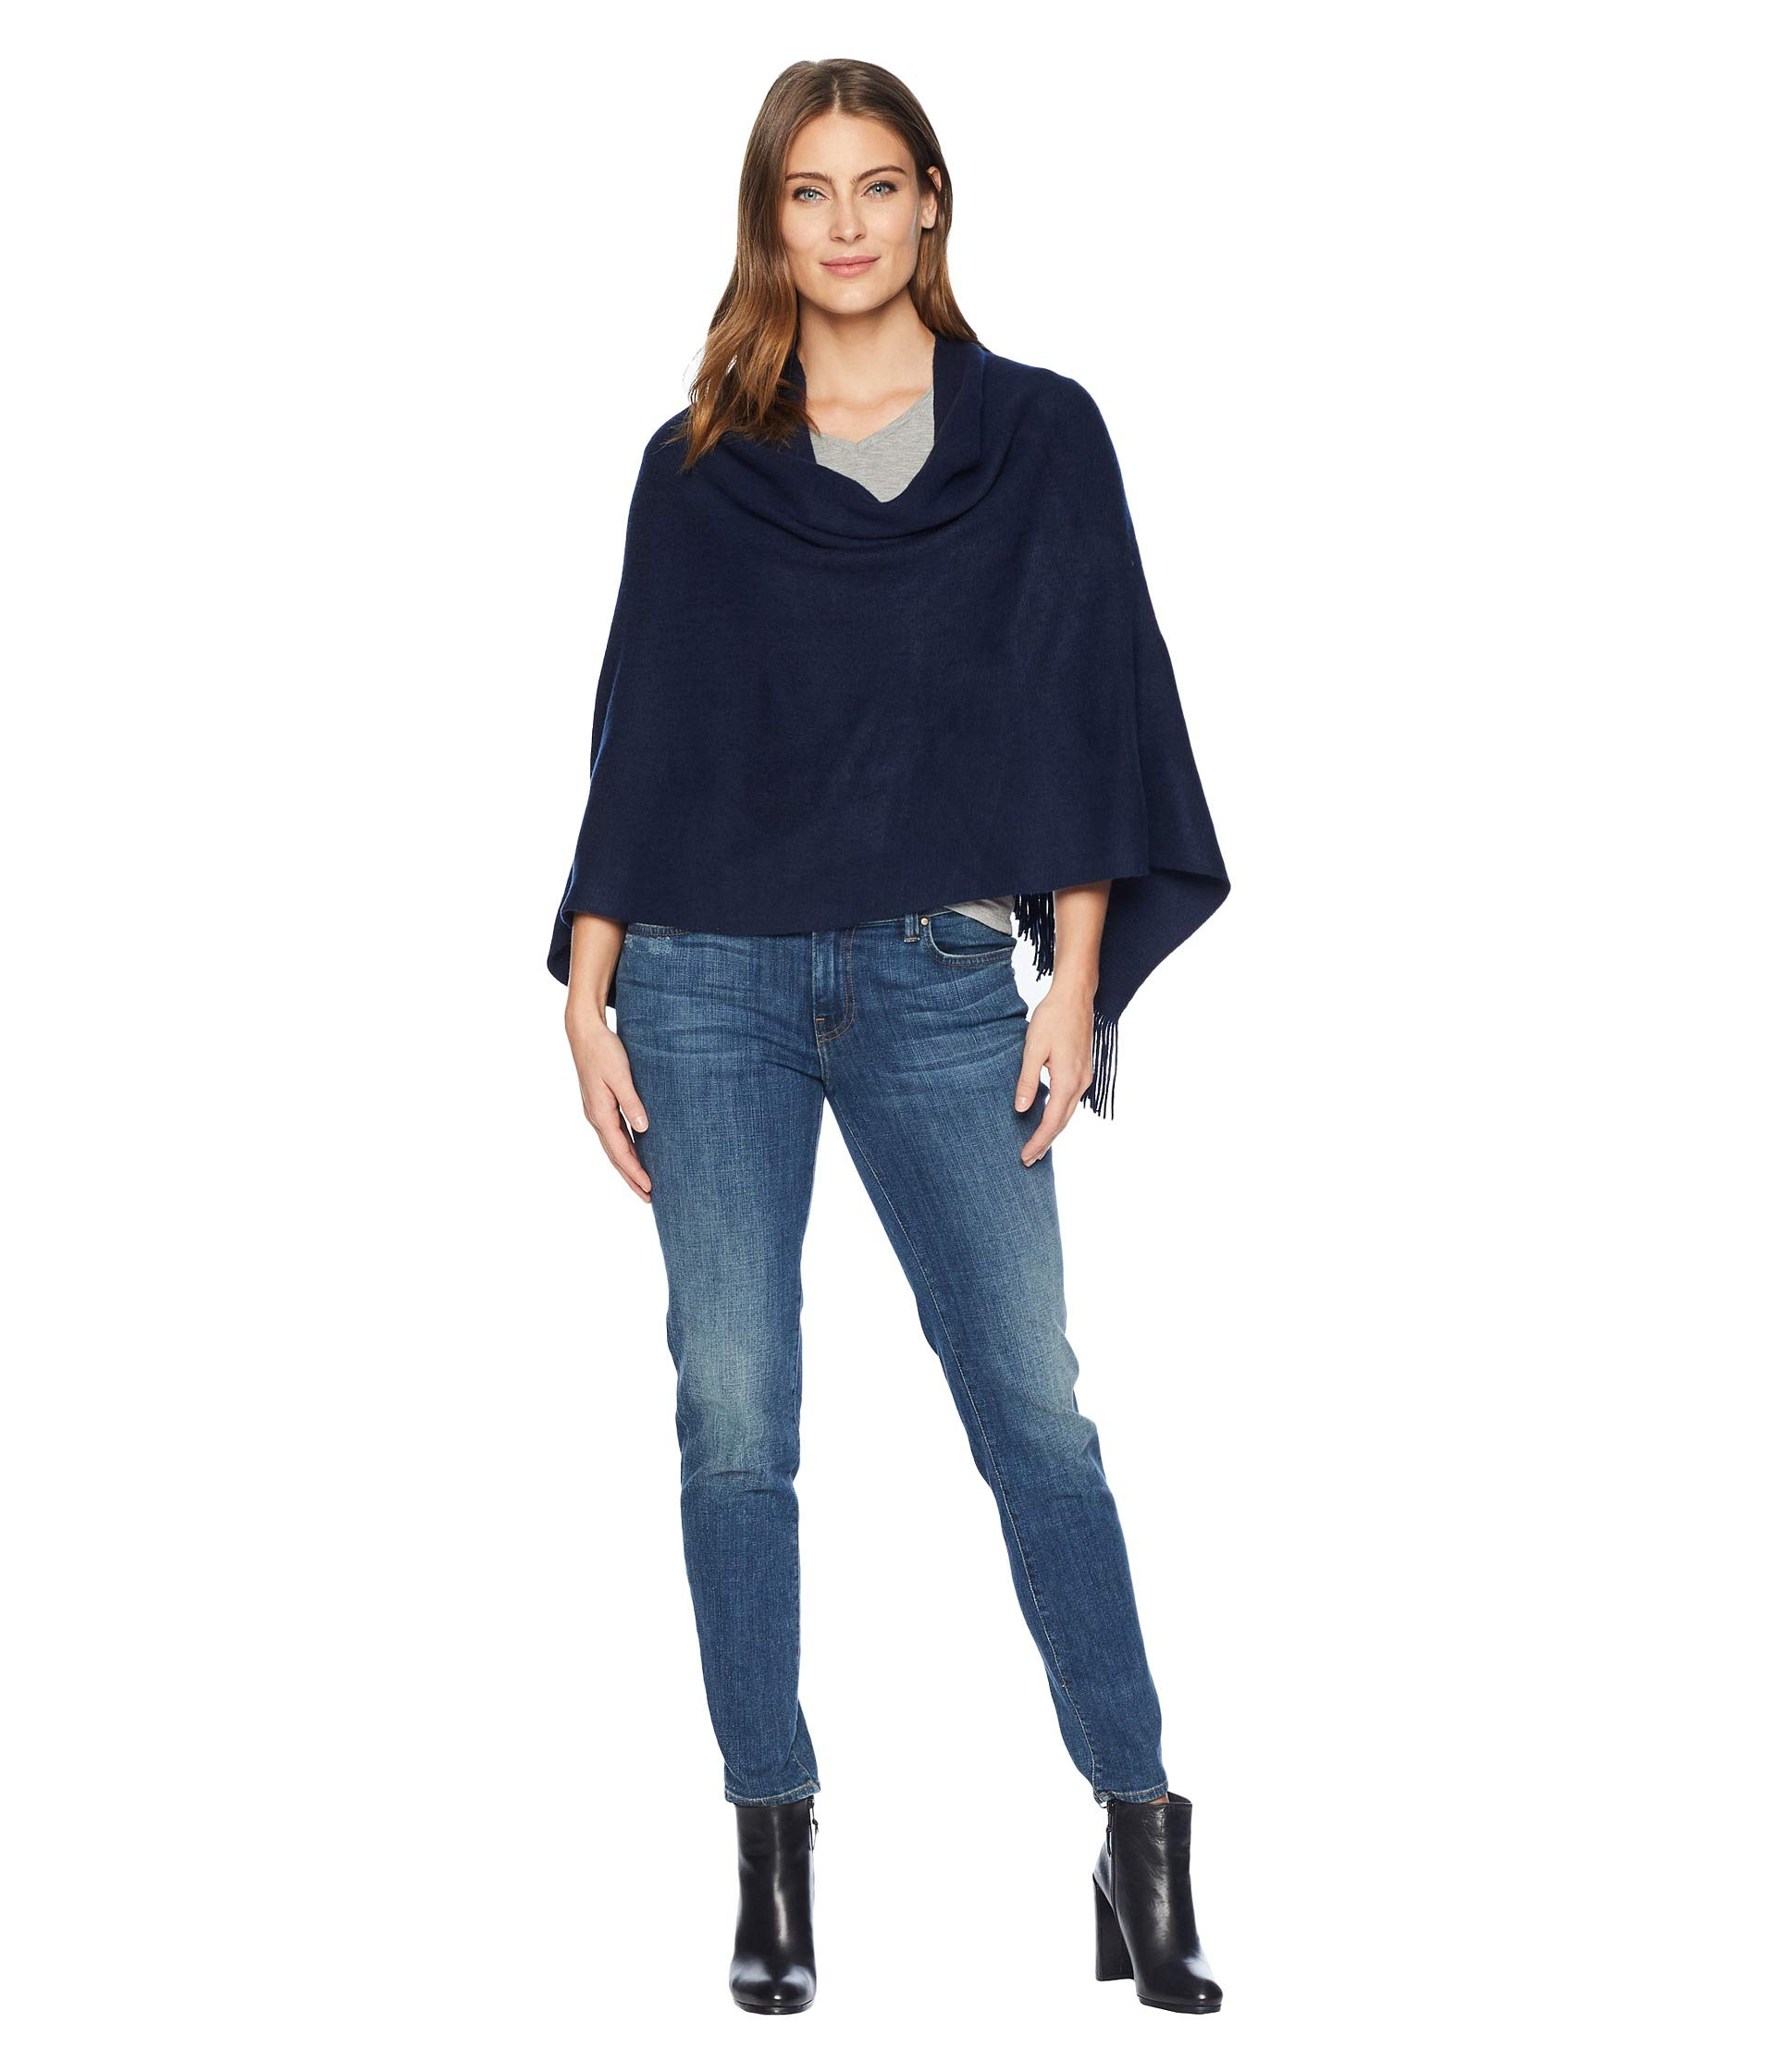 Echo Women's Milk Soft Topper, Navy, One Size by Echo Design